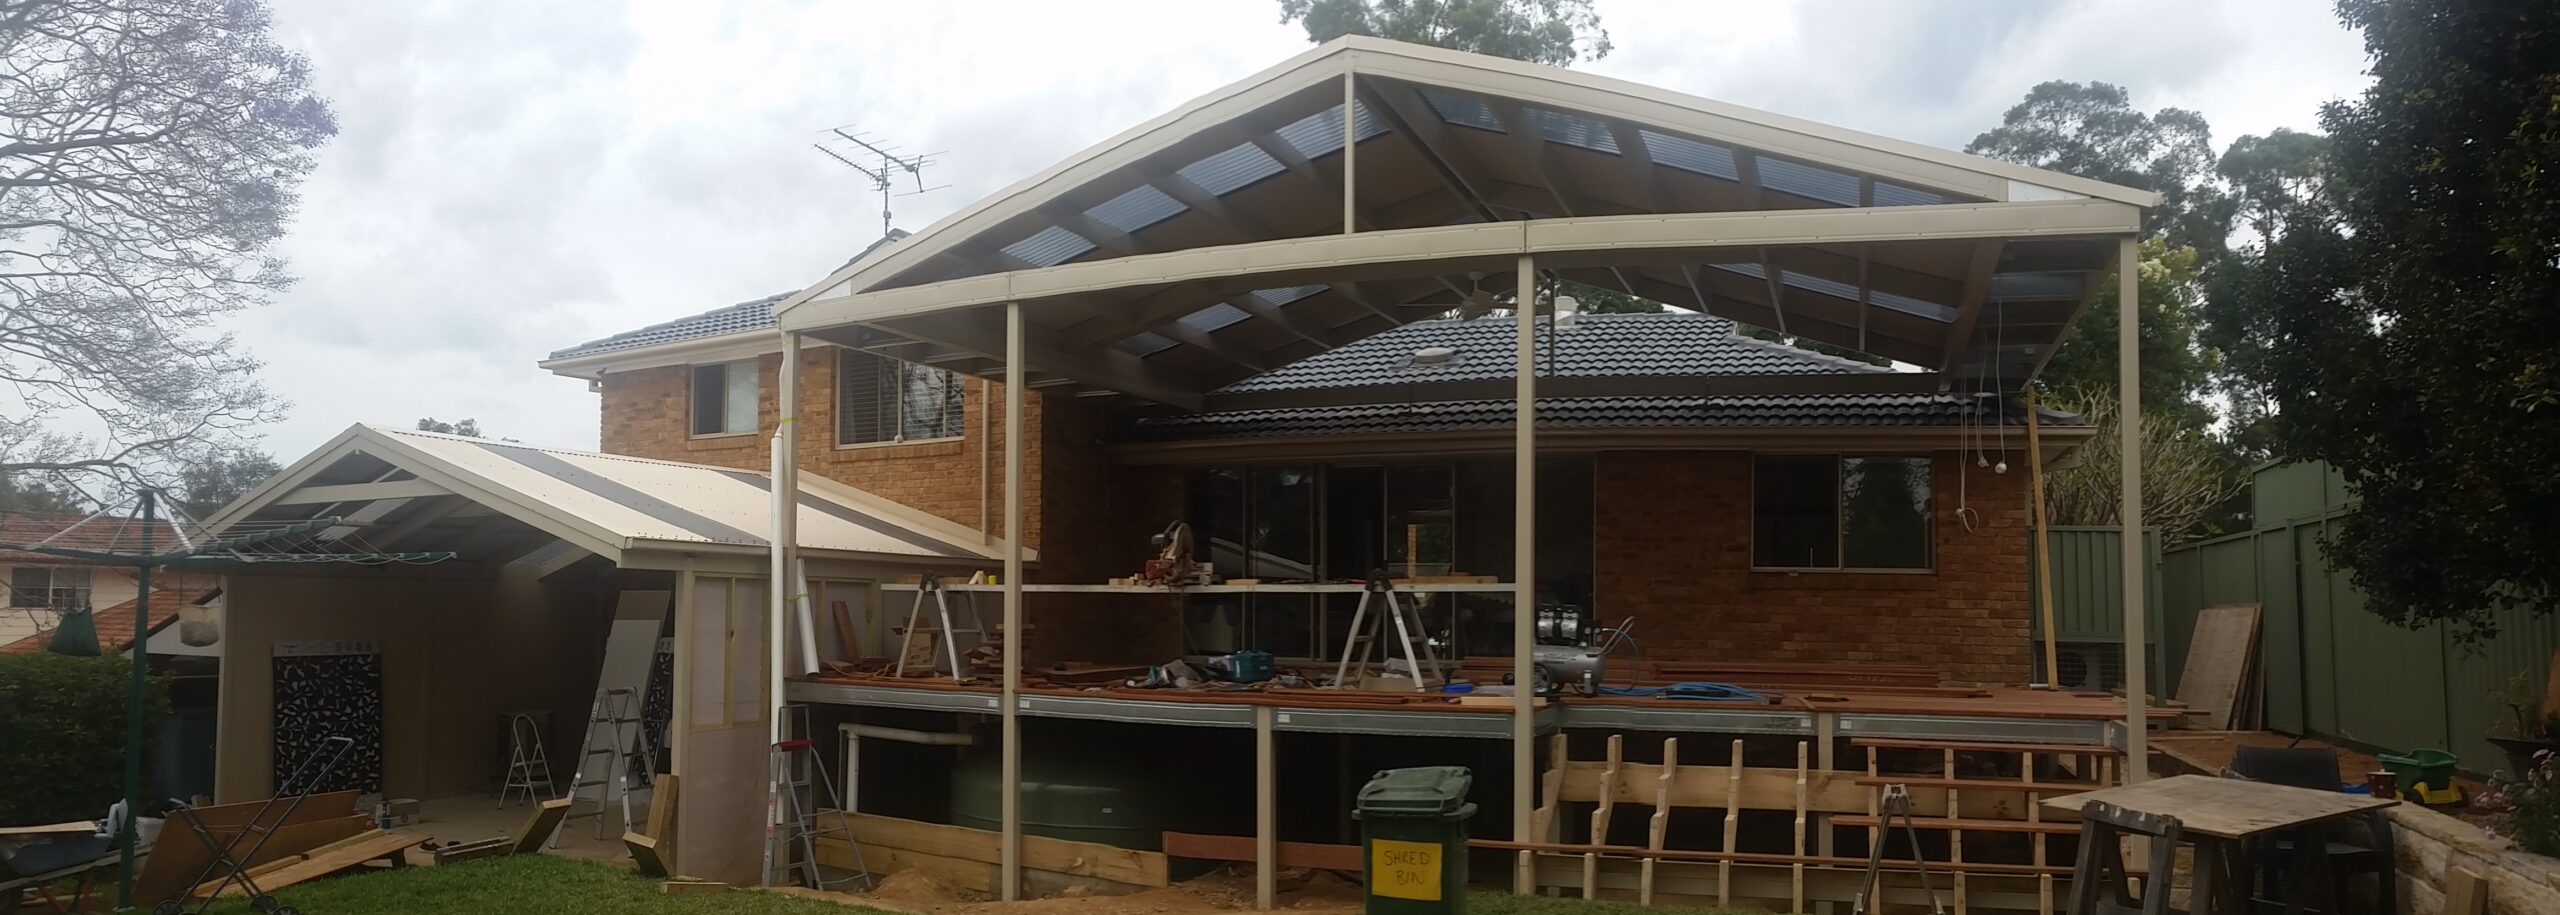 Boxspan Deck and pergola framing complete, stairs under construction, frame added to existing house